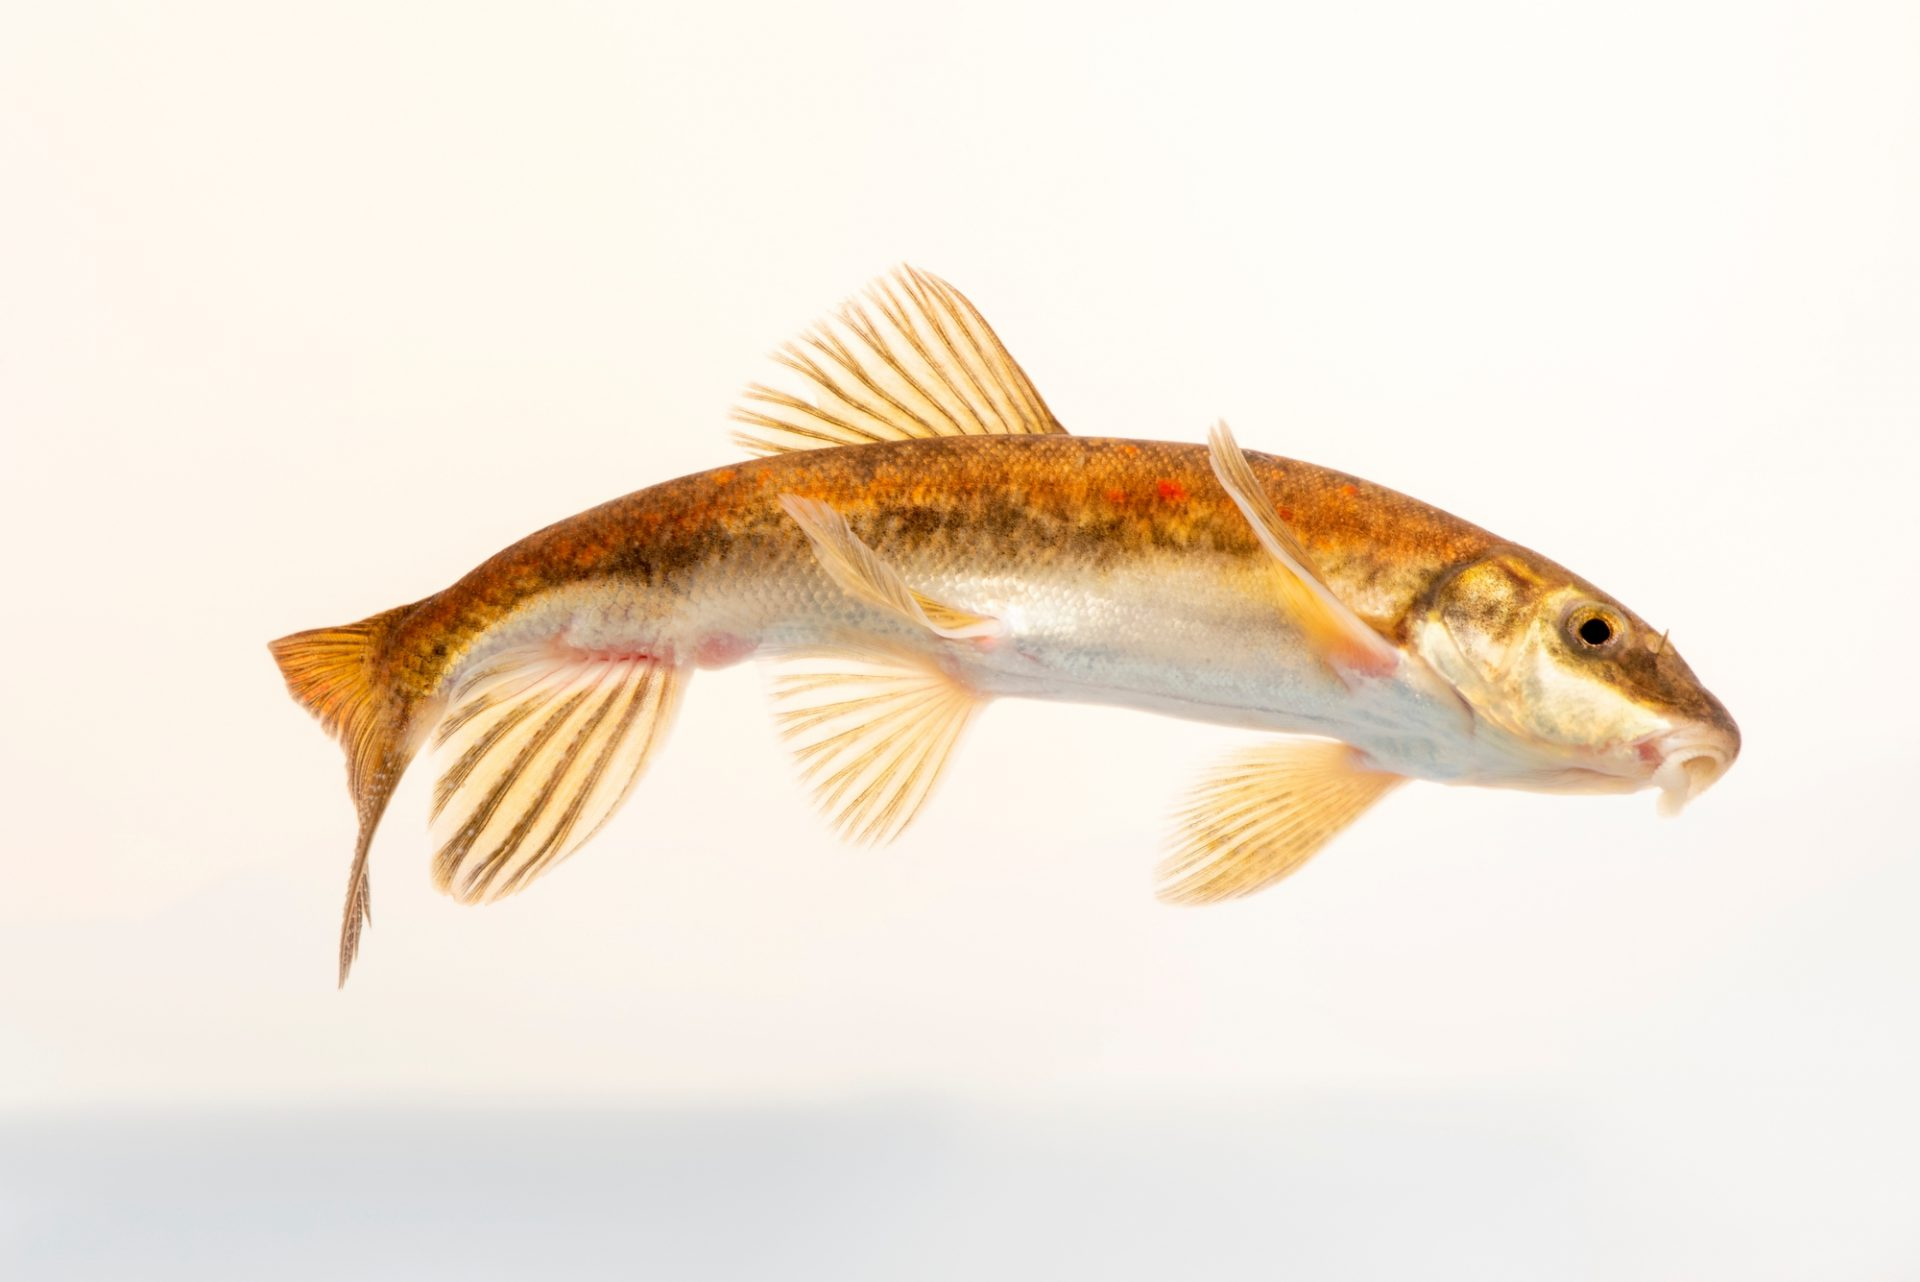 Photo: A Salish sucker, Catostomus Cf. catostomus, at the A Rocha Brooksdale Environmental Center in Surrey, BC. This species is federally protected.